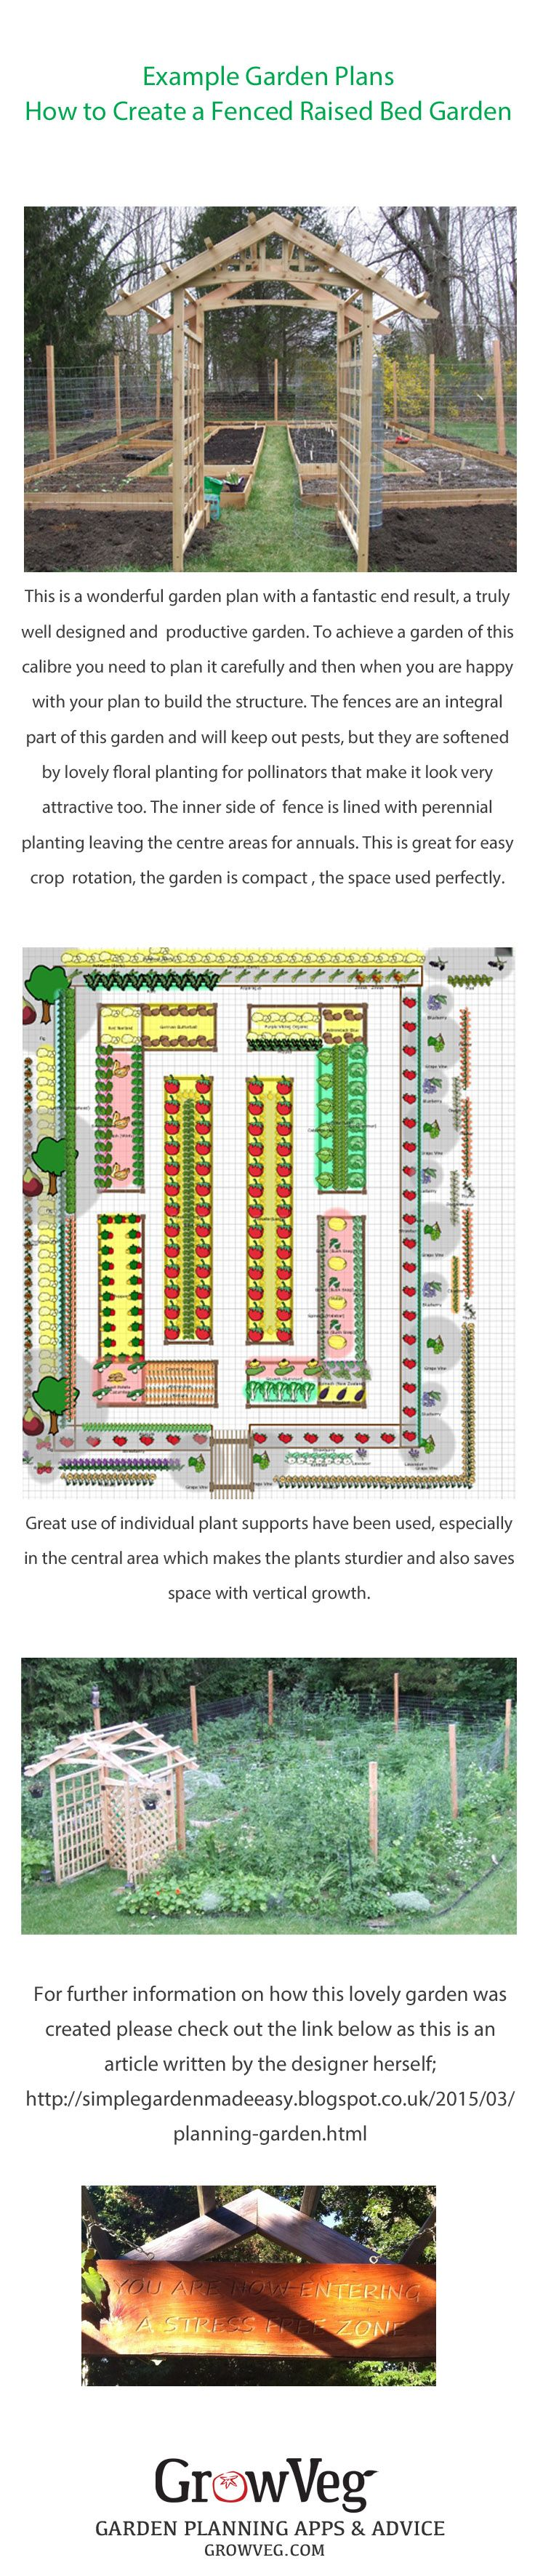 Raised vegetable garden planner - Another Wonderful Garden Planned With The Garden Planner And Generously Shared By One Of Our Customers